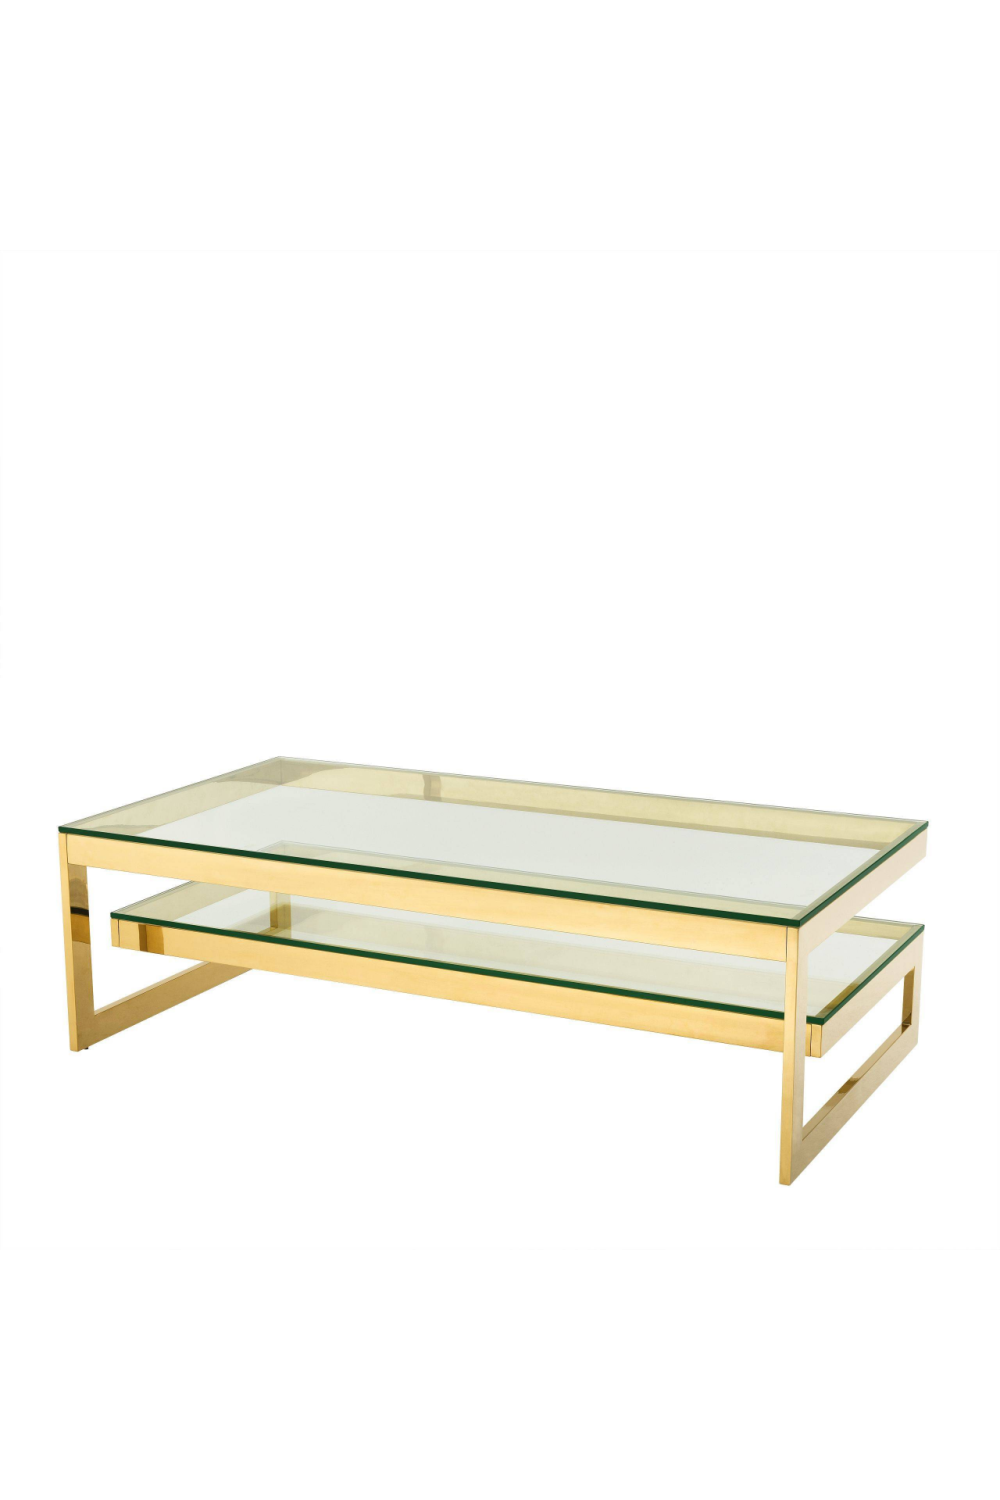 Two Level Gold Coffee Table | Eichholtz Gamma | #1 Eichholtz Retailer